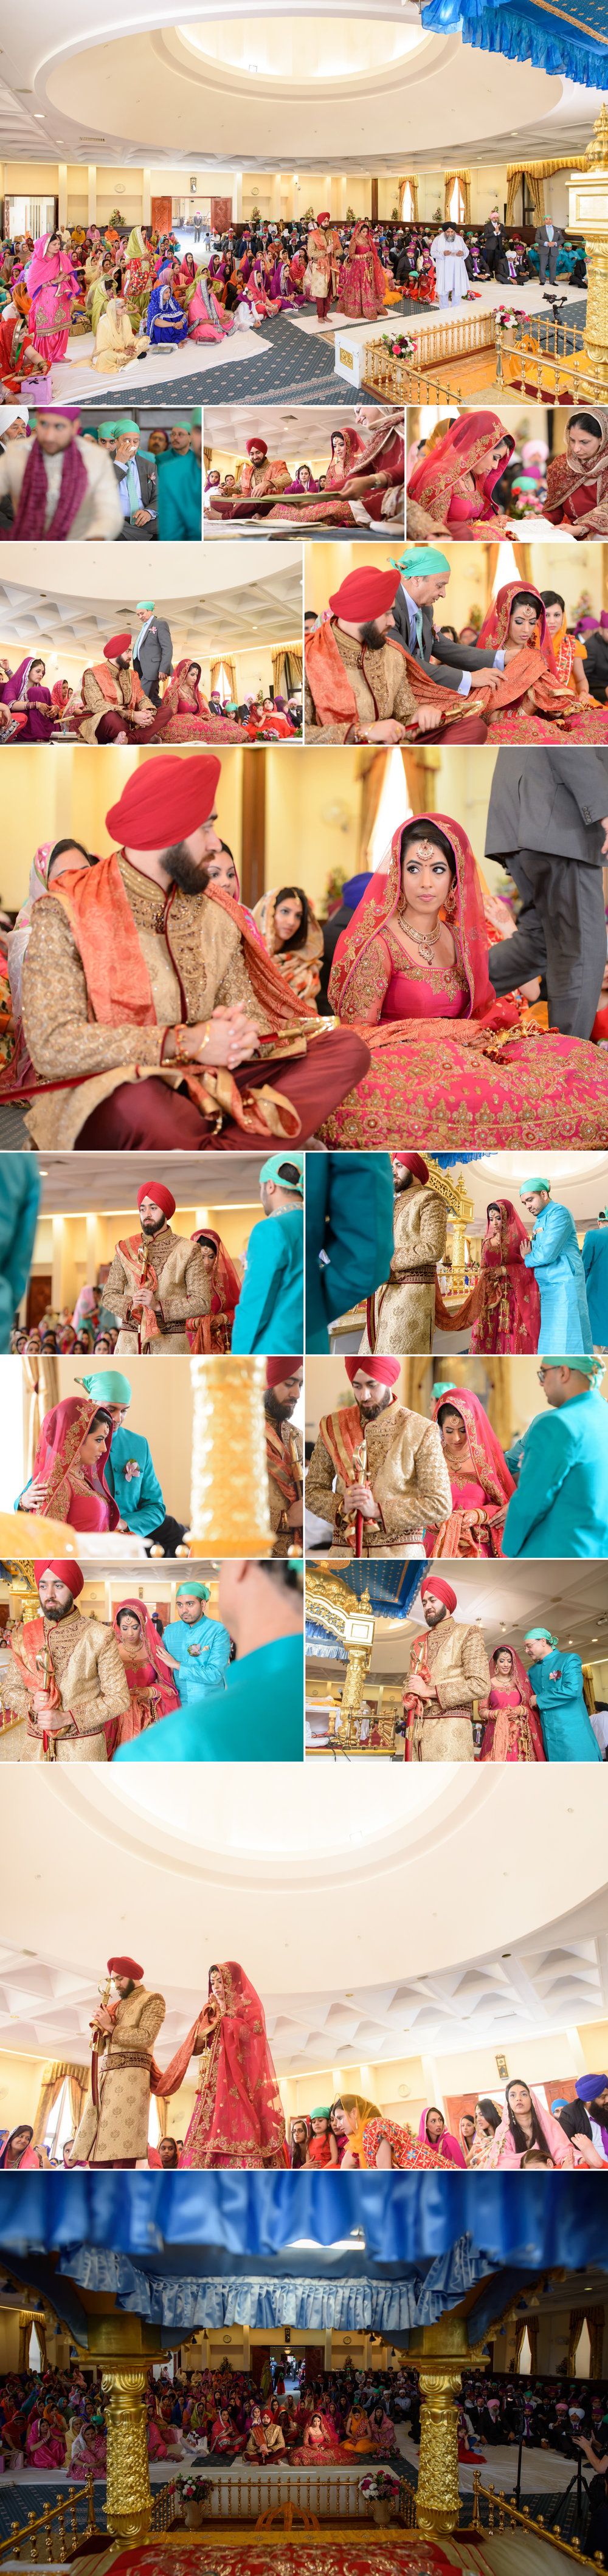 satnam photography sikh wedding ceremony alice way gurdwara london hounslow wedding photography-5